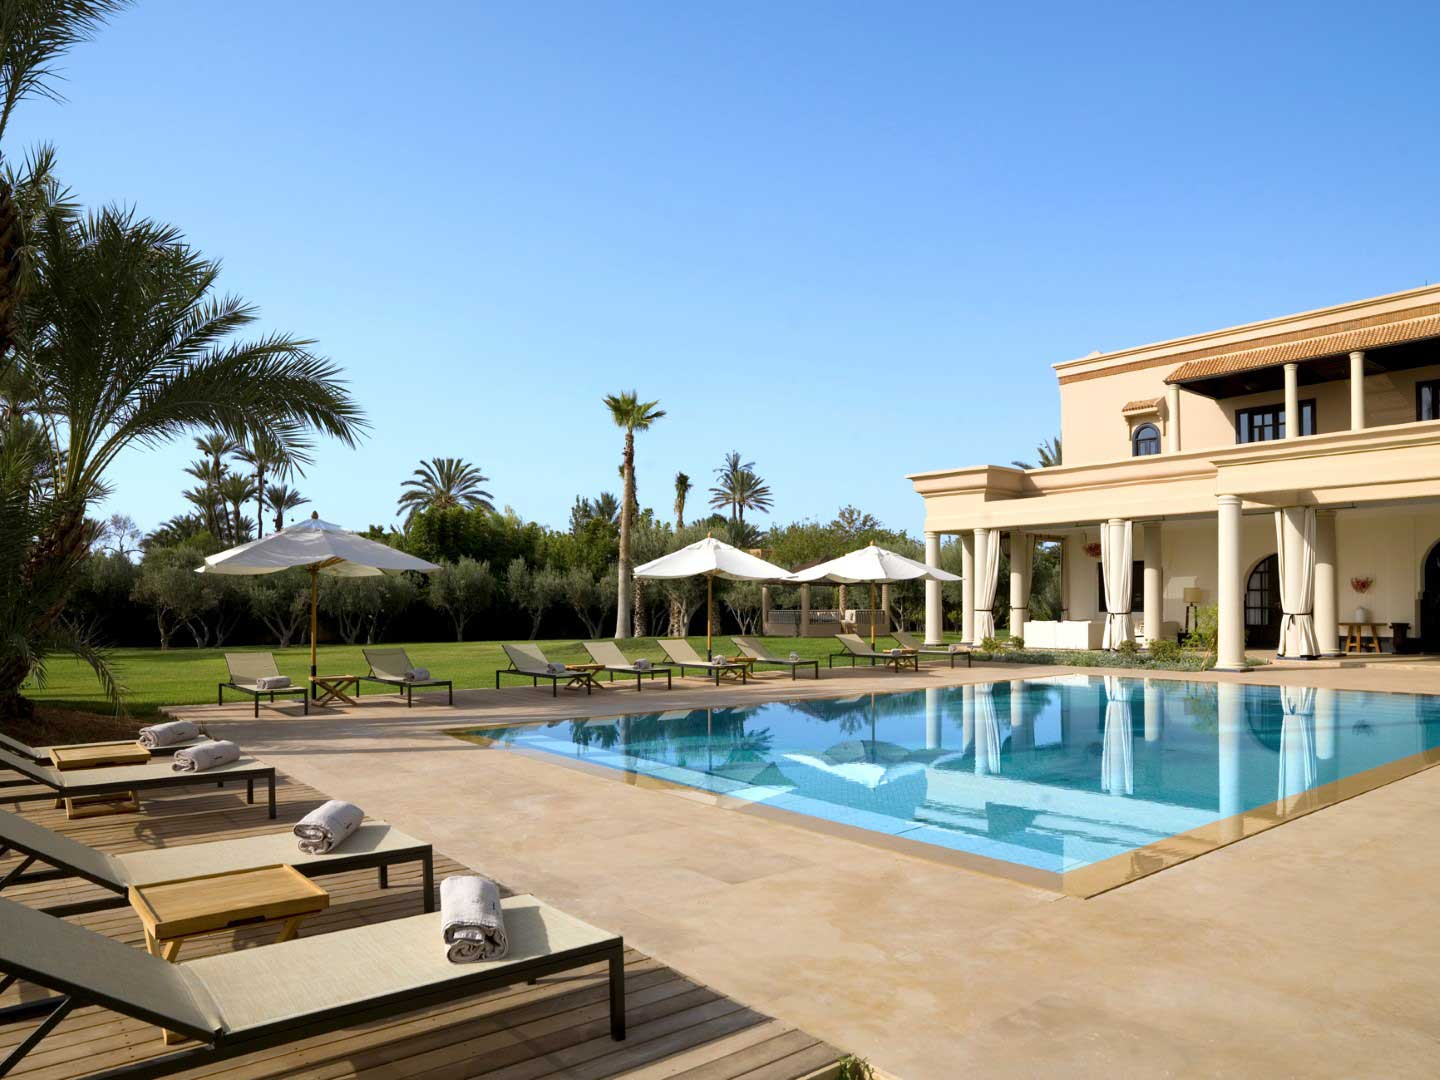 Location villa marrakech 25 villas de luxe viaprestige for Une villa de reve